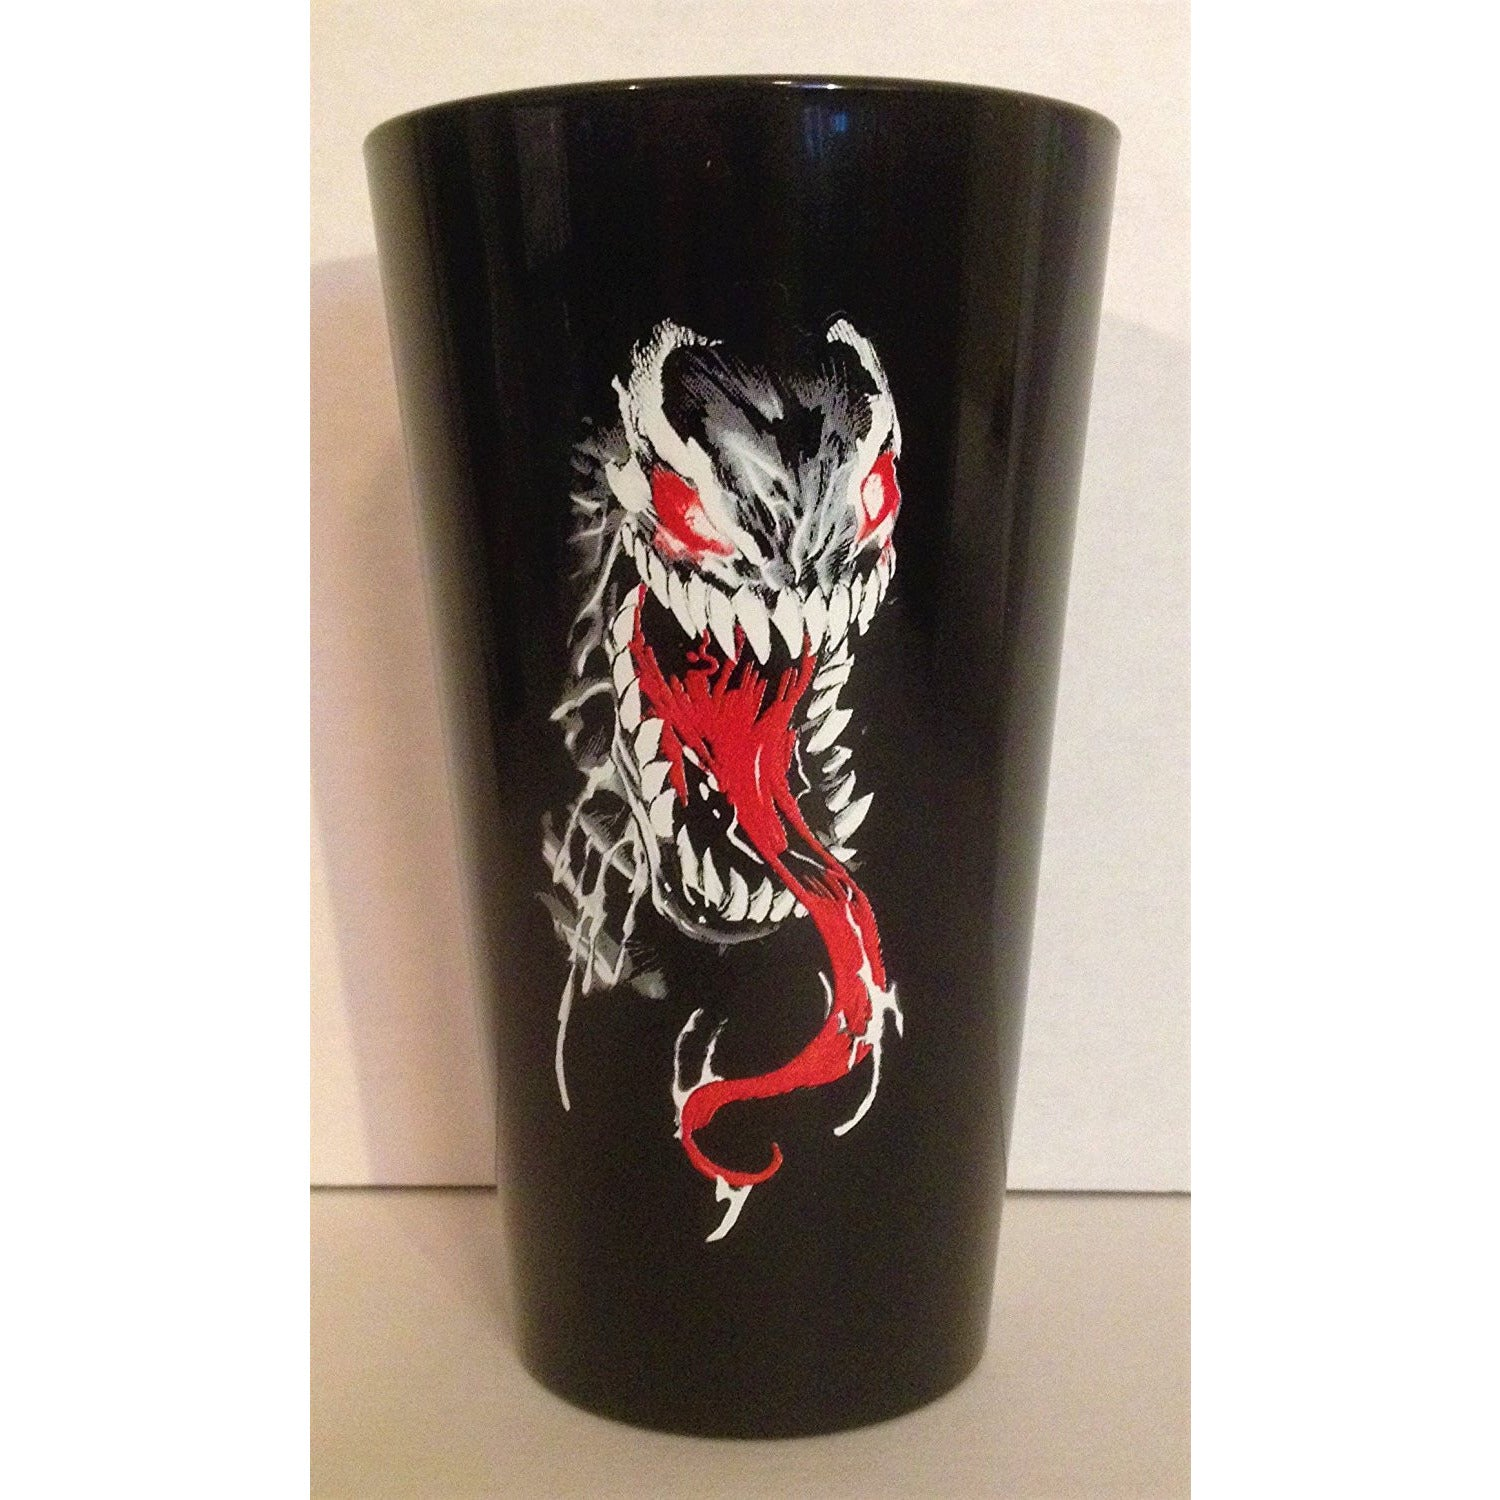 Venom Black Pint Glass Uncanny!